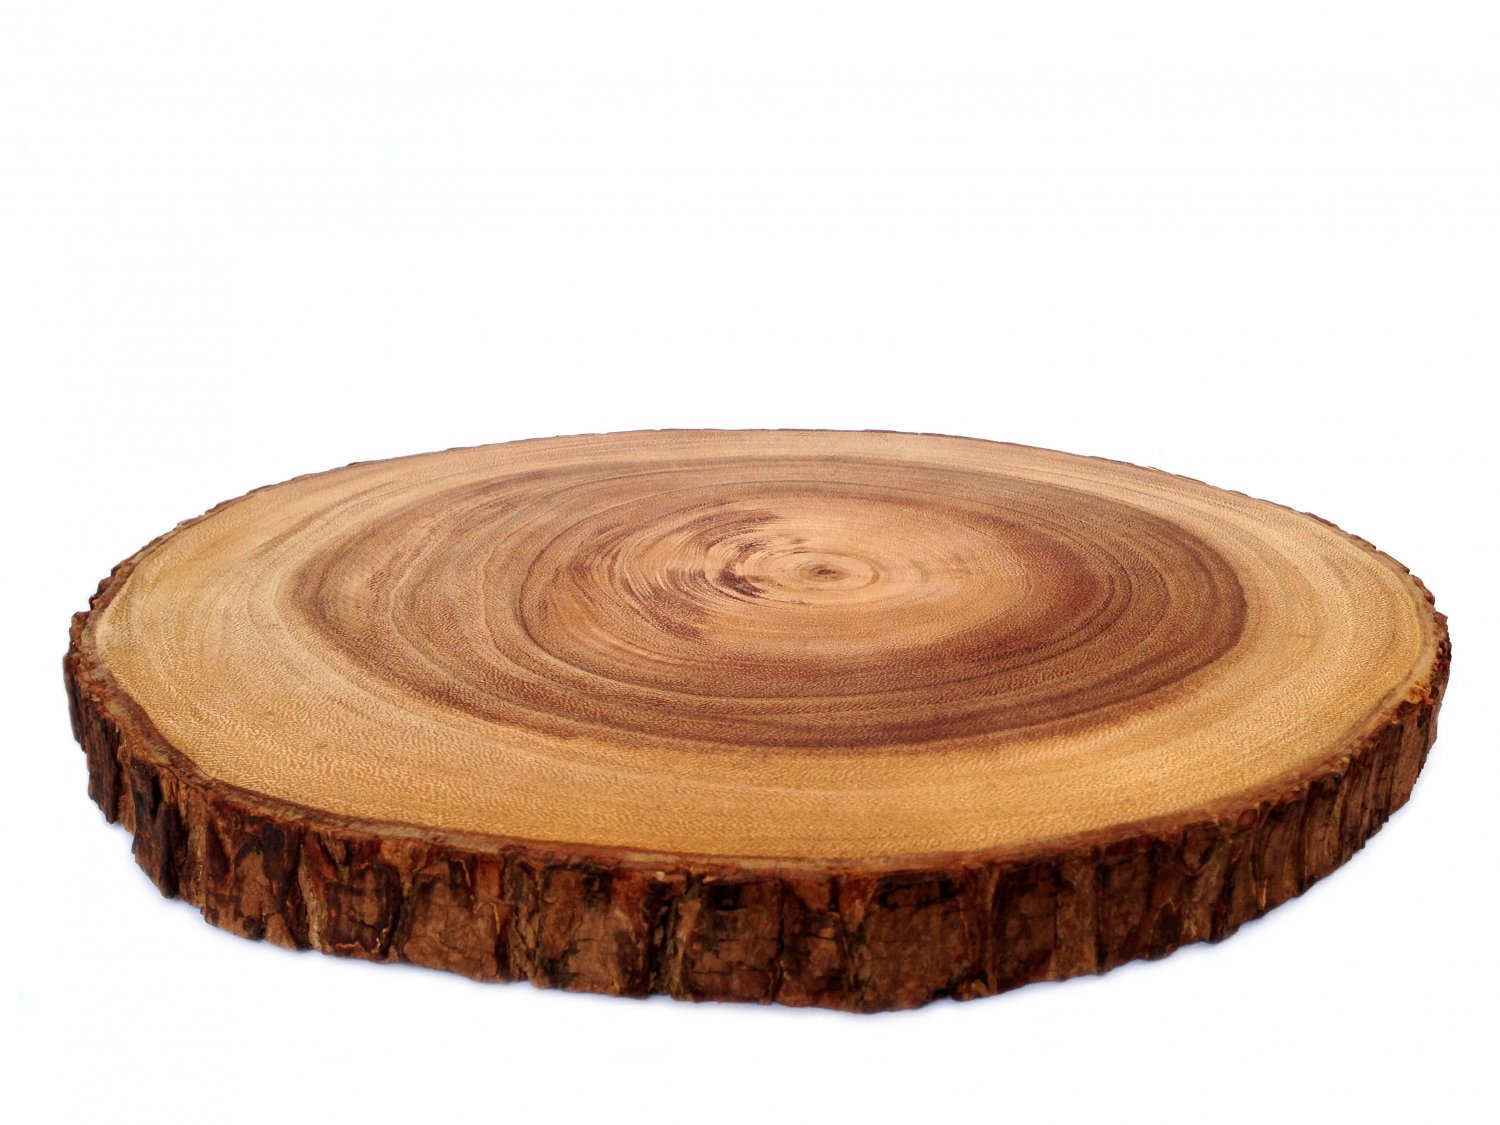 Rustic Tree Bark Wood Cutting Board Wood Slice Wood Charger Cupcake Stand Chopping Board